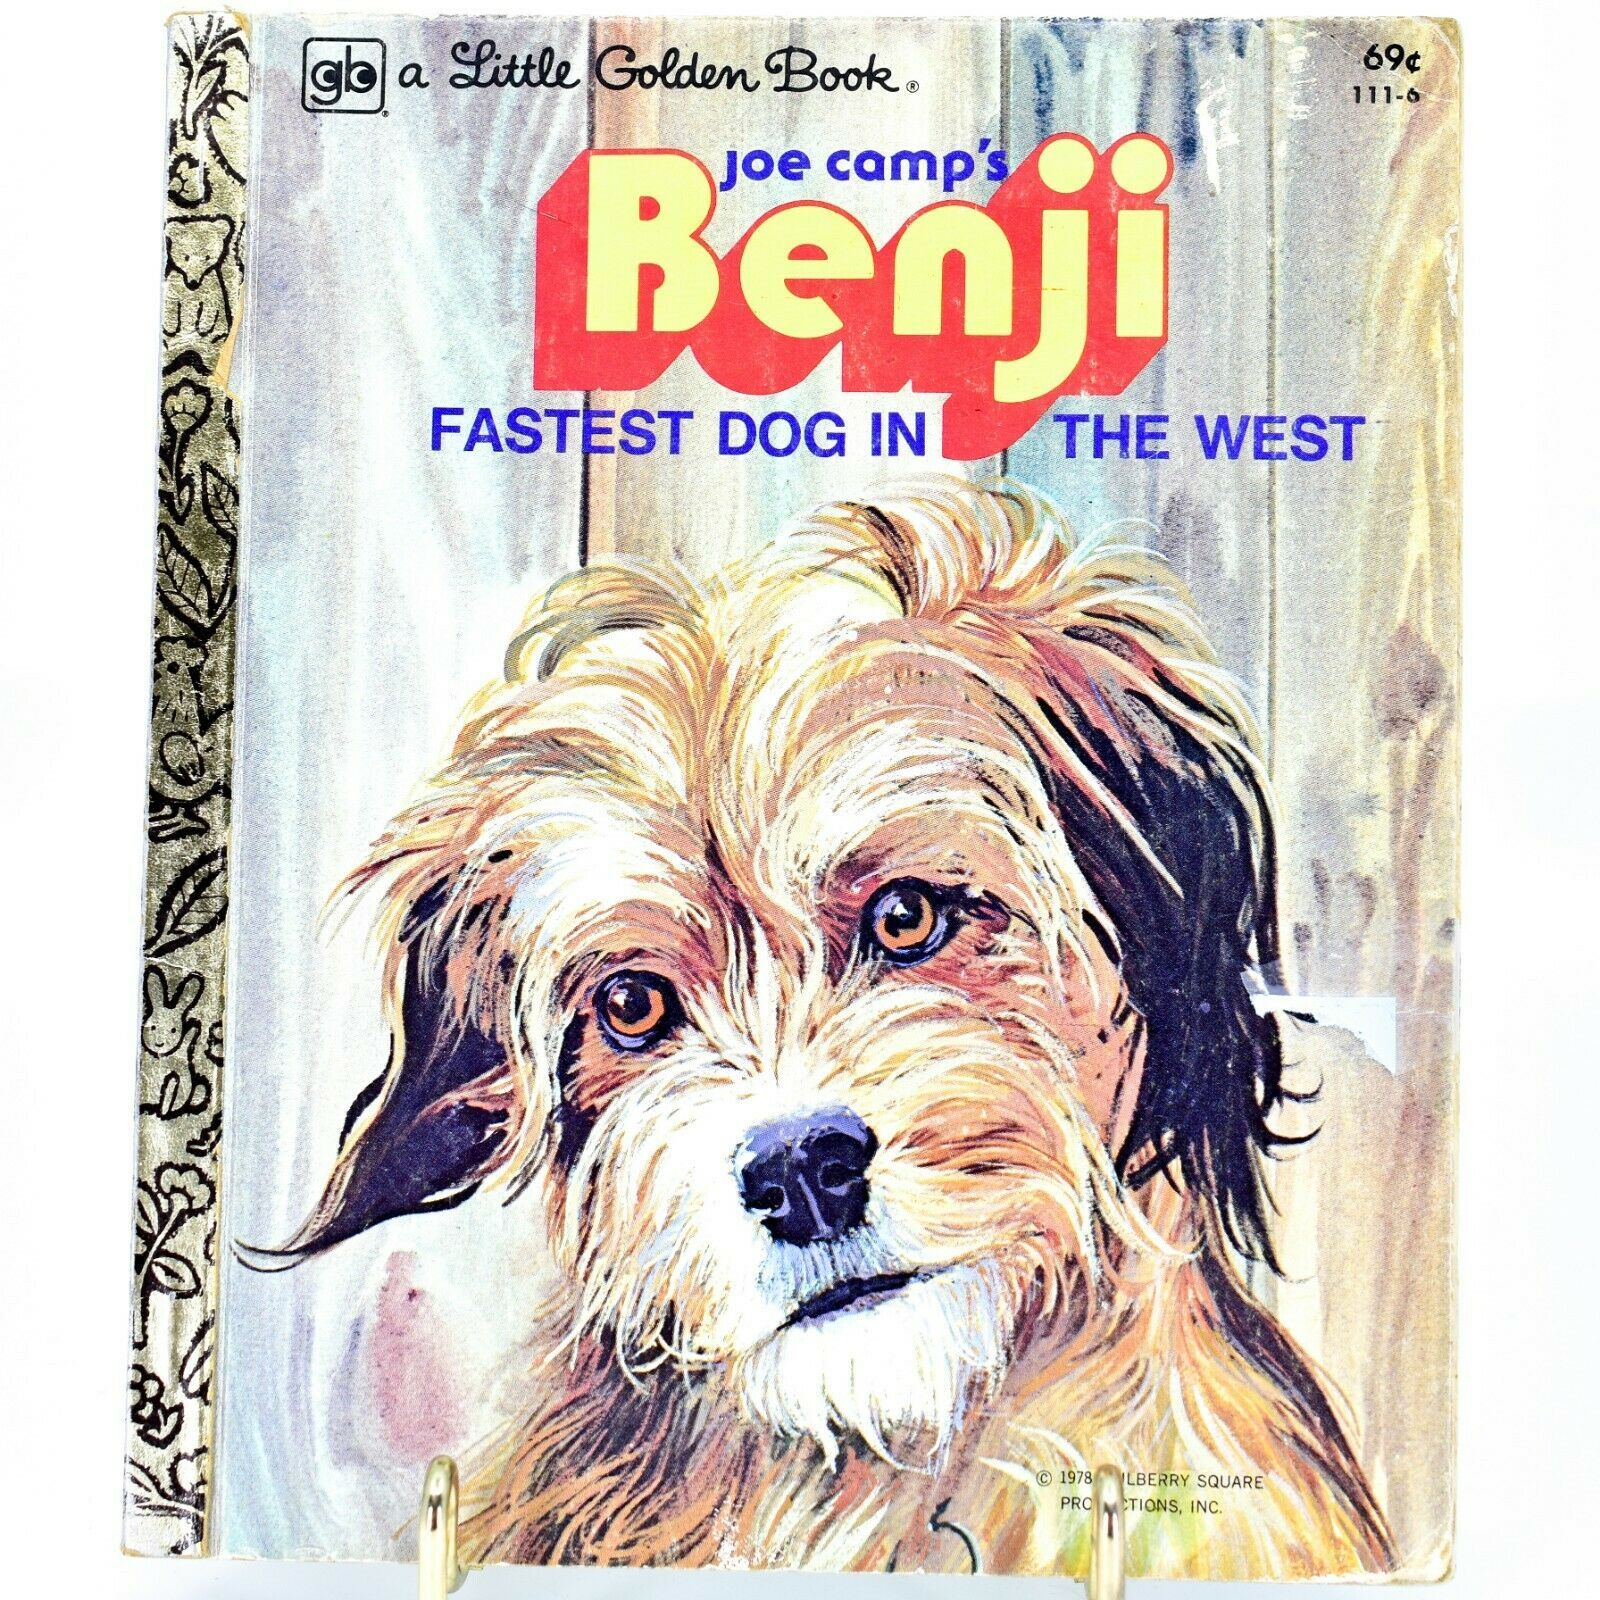 A Little Golden Book Joe Camp's Benji Fastest Dog in the West 111-6 2nd Printing